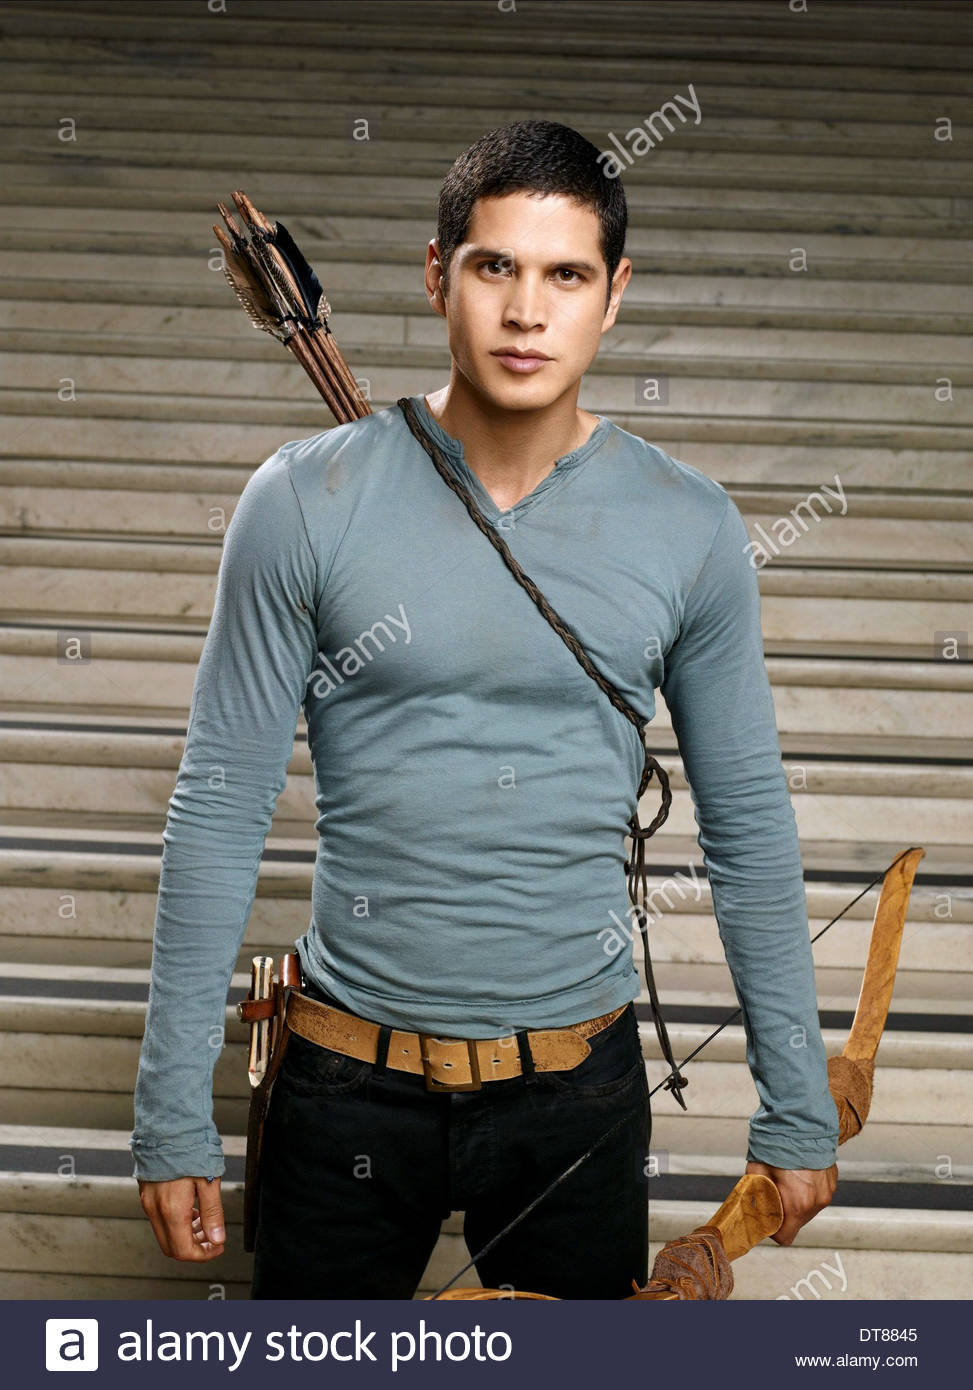 JD PARDO REVOLUTION  2012 Stock Photo  66564853   Alamy JD PARDO REVOLUTION  2012